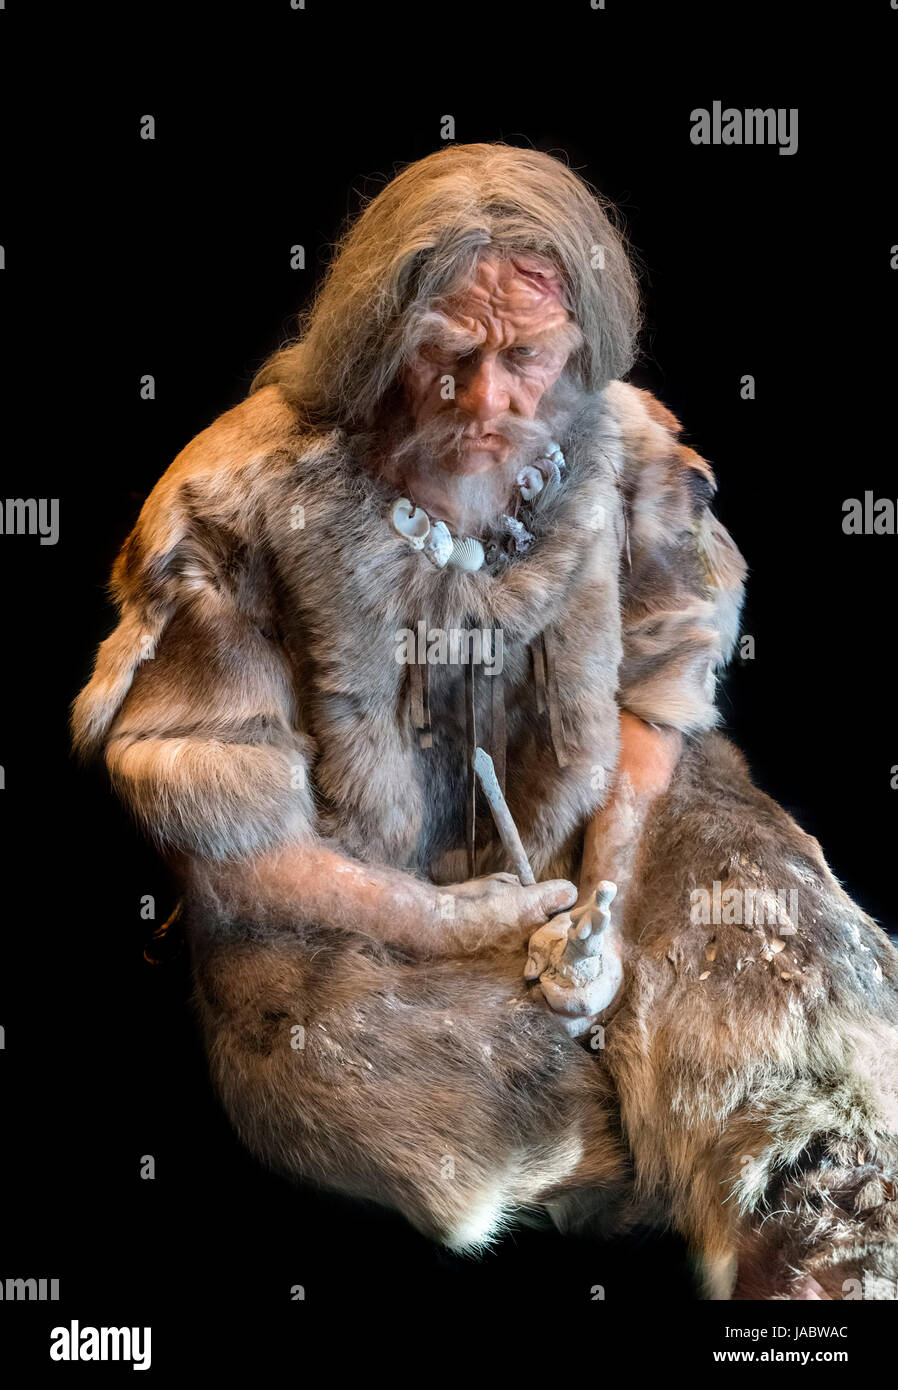 Waxwork of a Late Stone Age (Upper Paleolithic) Man c.30,000 BC, Neues Museum, Berlin, Germany - Stock Image